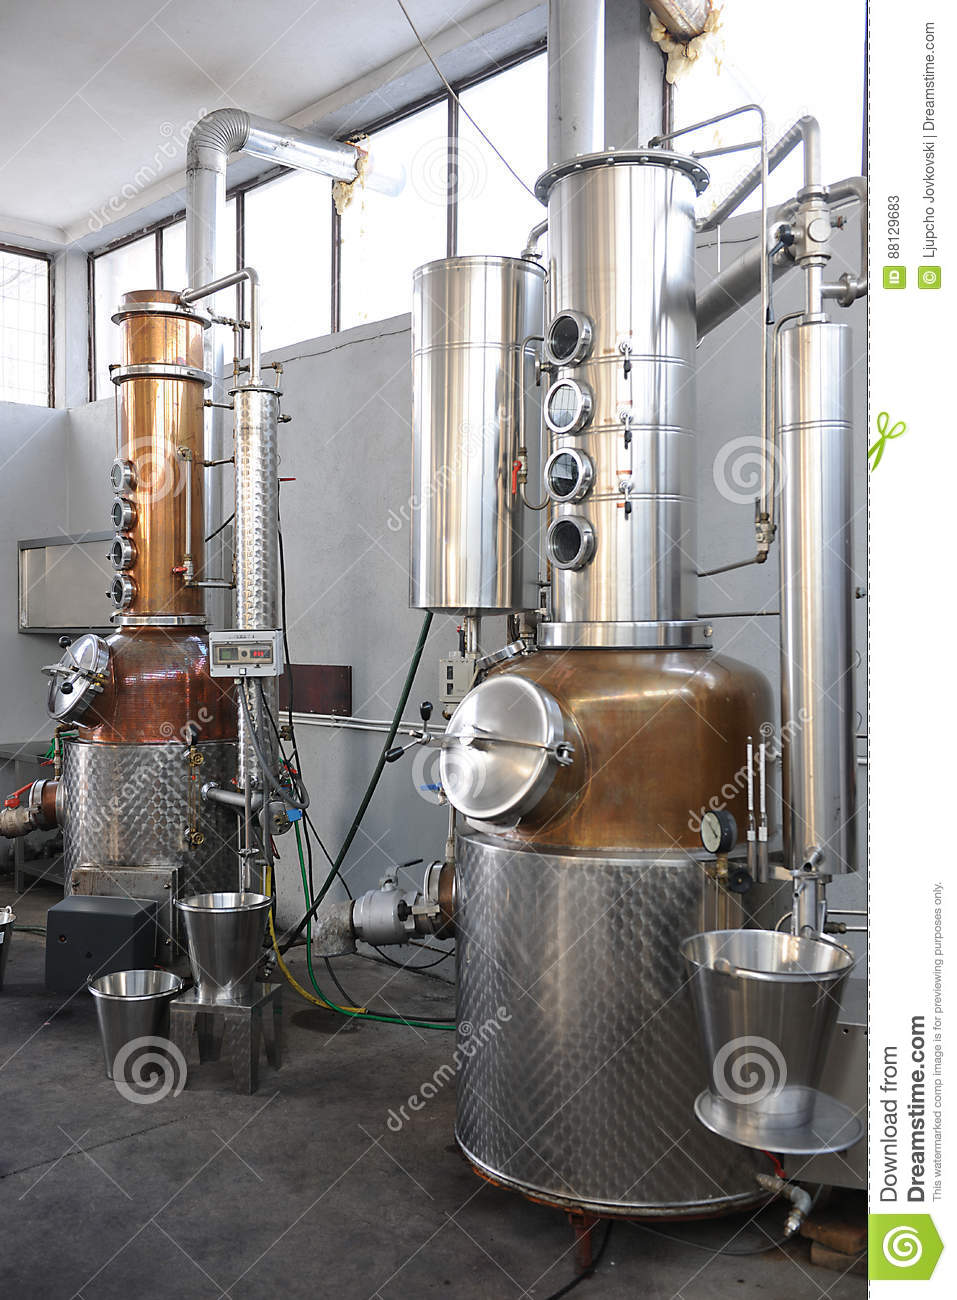 Part of the technology of producing brandy